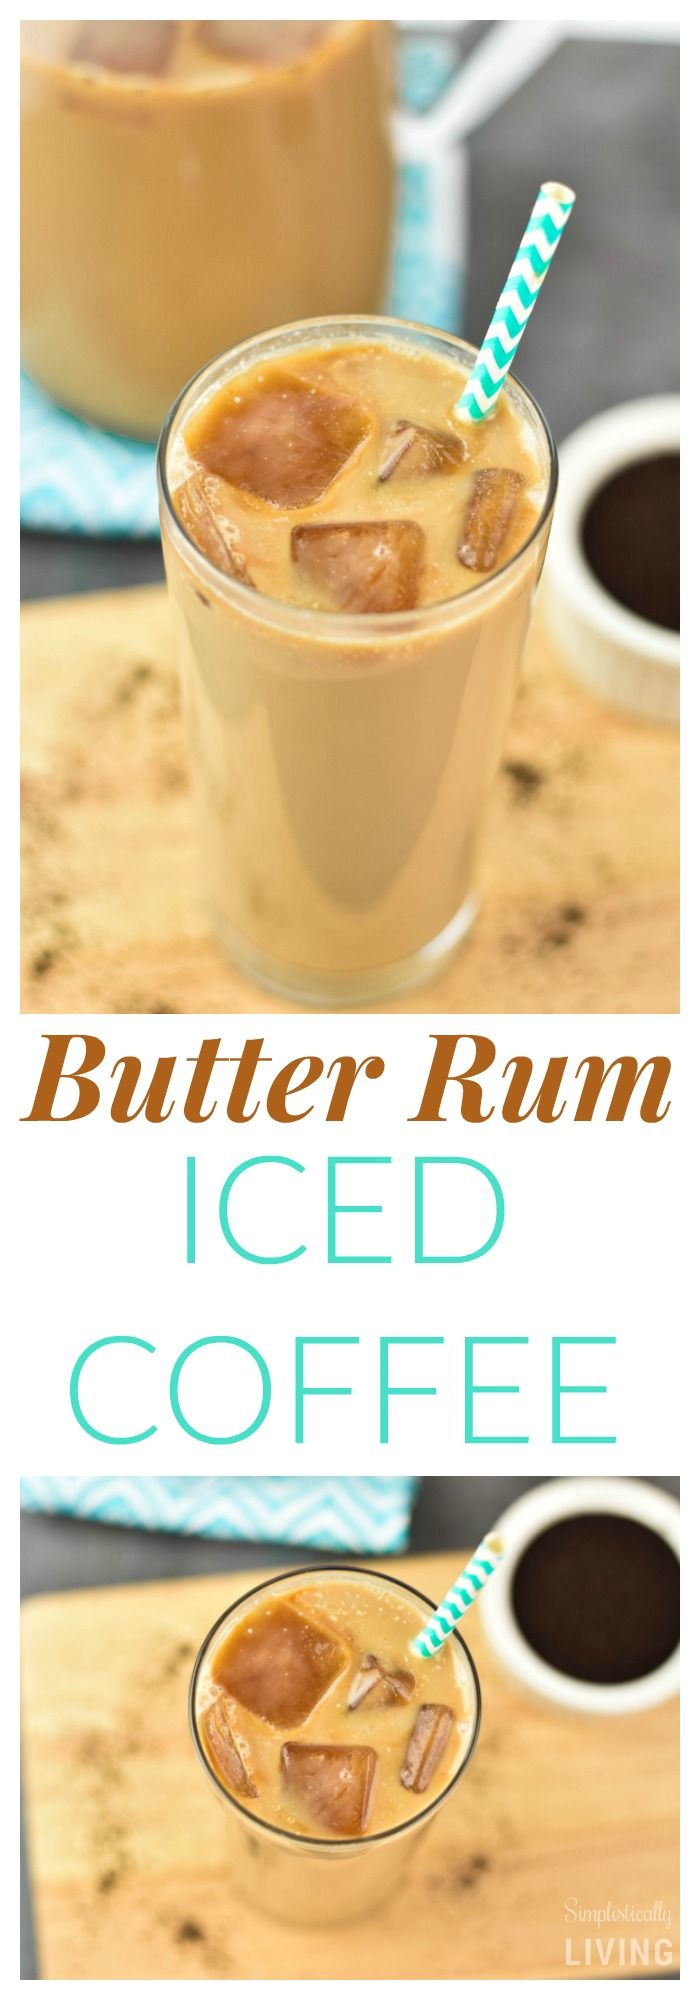 Butter Rum Iced Coffee, Iced Coffee Recipes, Coffee Recipes (Cocoa Butter Smoothie)